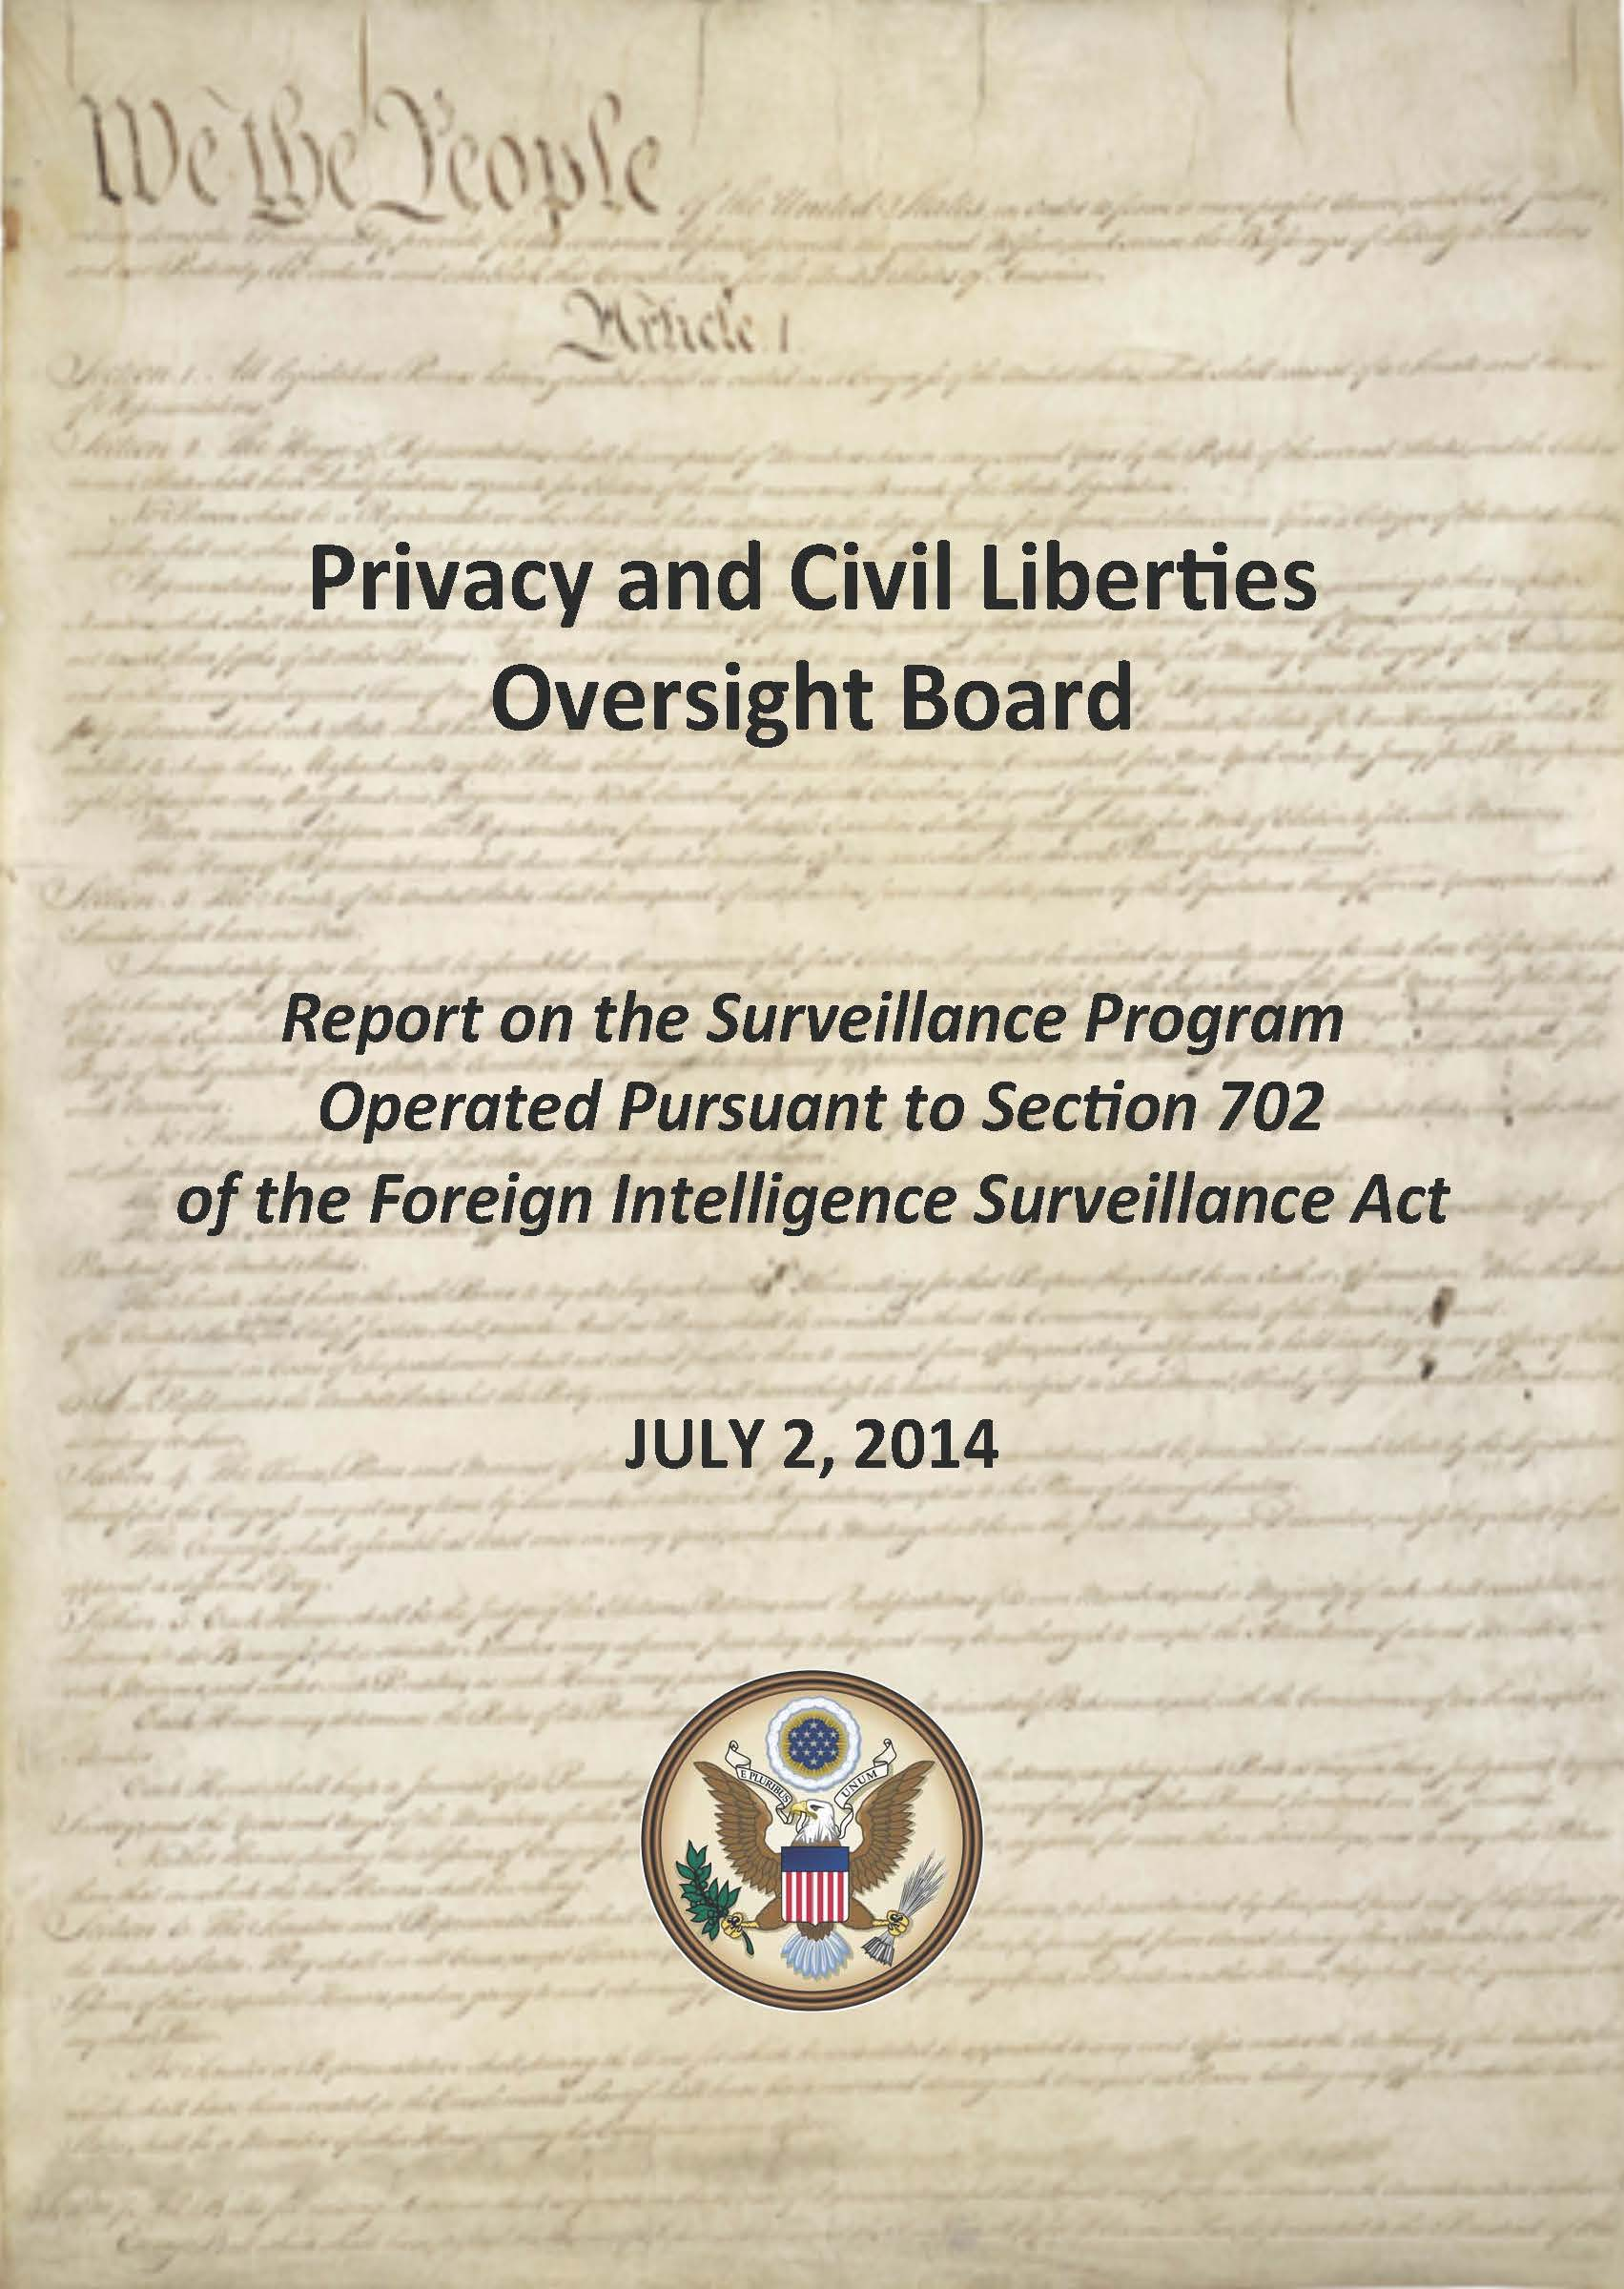 Cover for the Report on the Surveillance Program Operated Pursuant to Section 702 of the Foreign Intelligence Surveillance Act